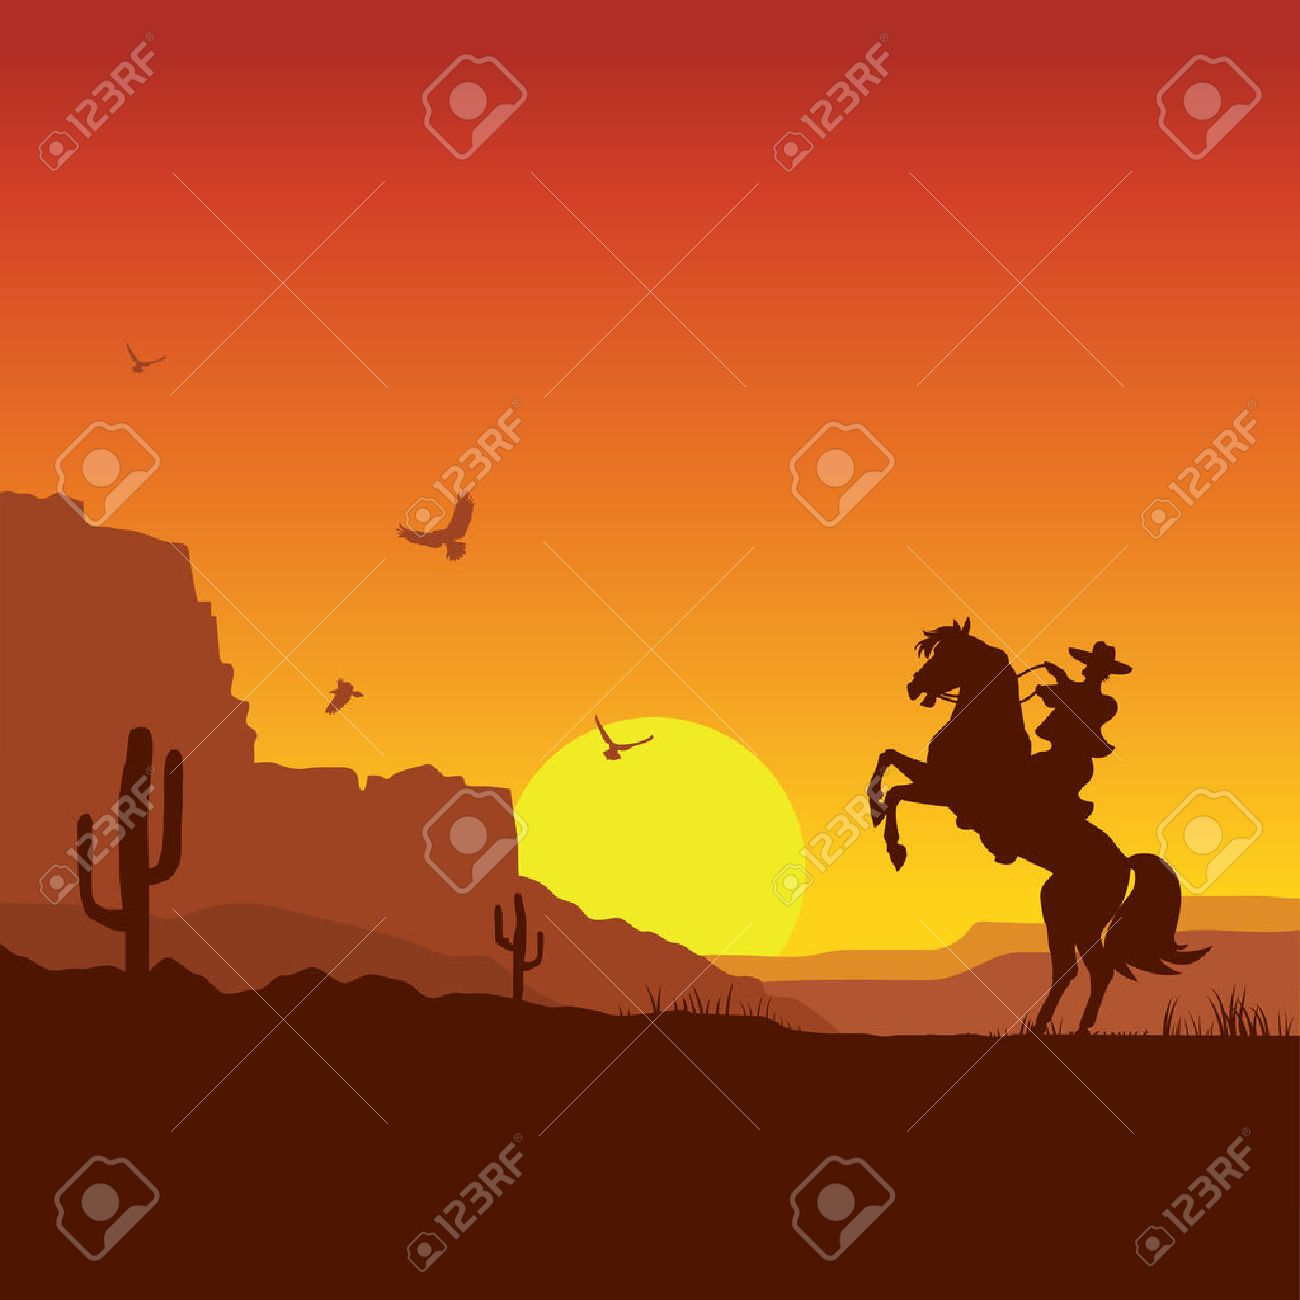 American wild west desert with cowboy on horse.Vector sunset landscape - 35642731